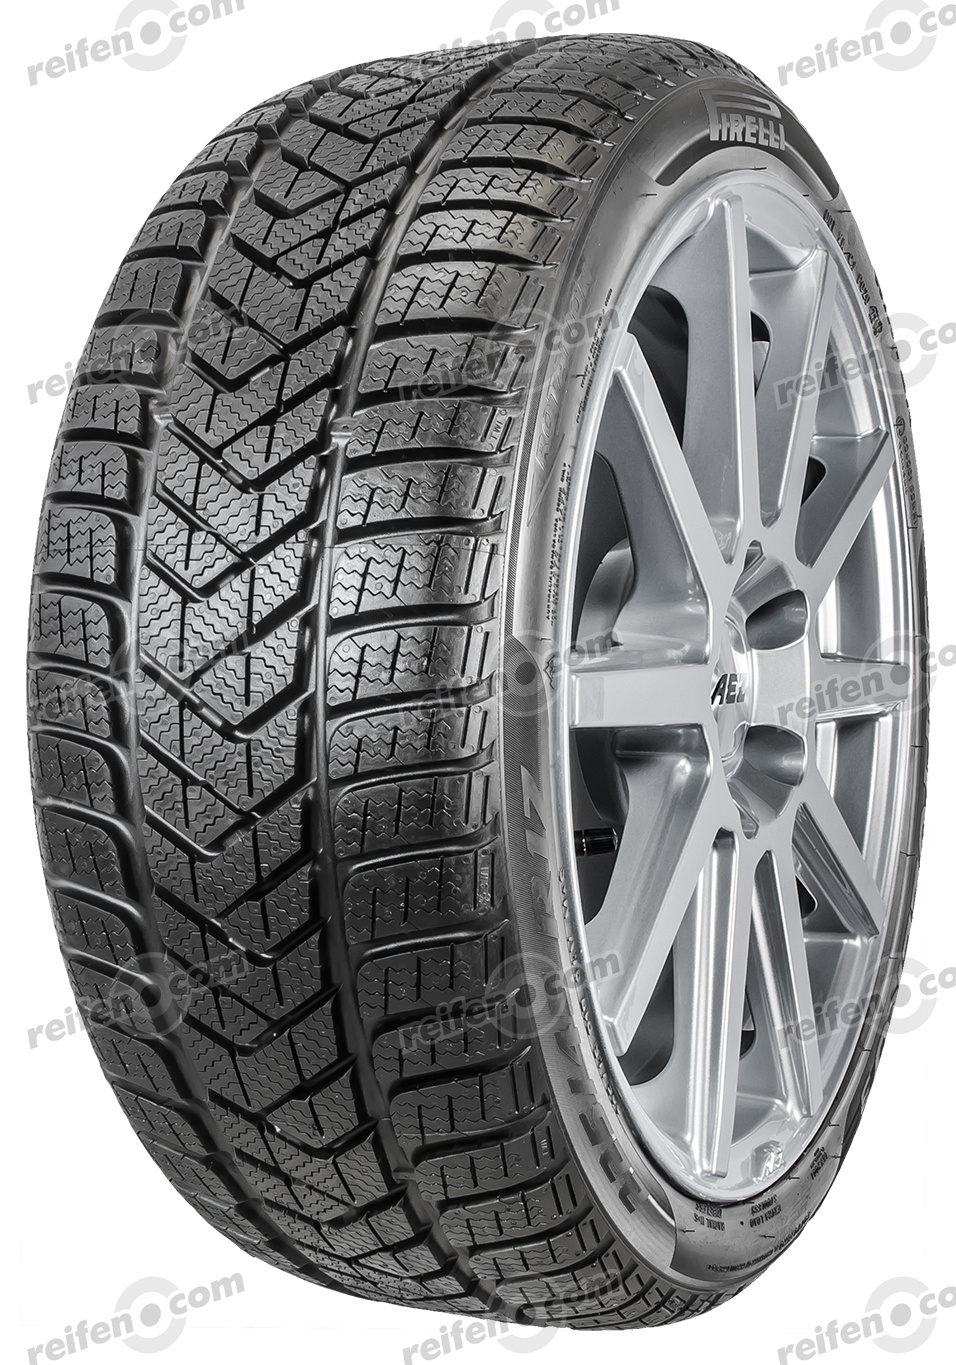 225/45 R18 91H Winter Sottozero 3 MO  Winter Sottozero 3 MO